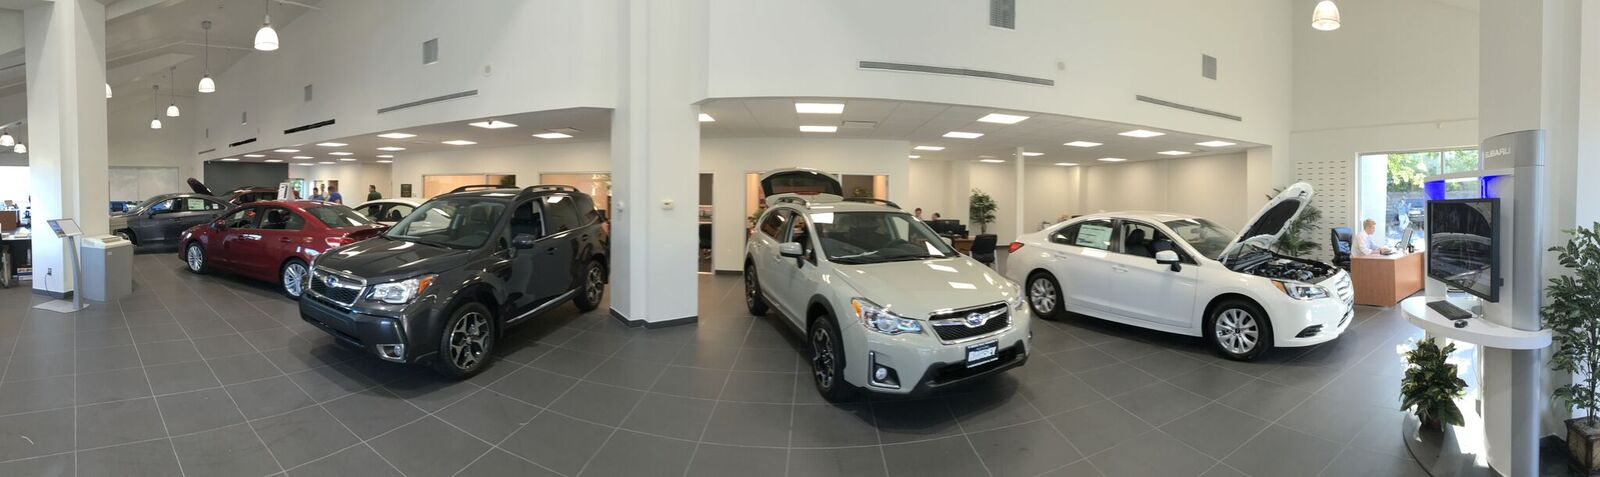 North Jersey Subaru Showroom